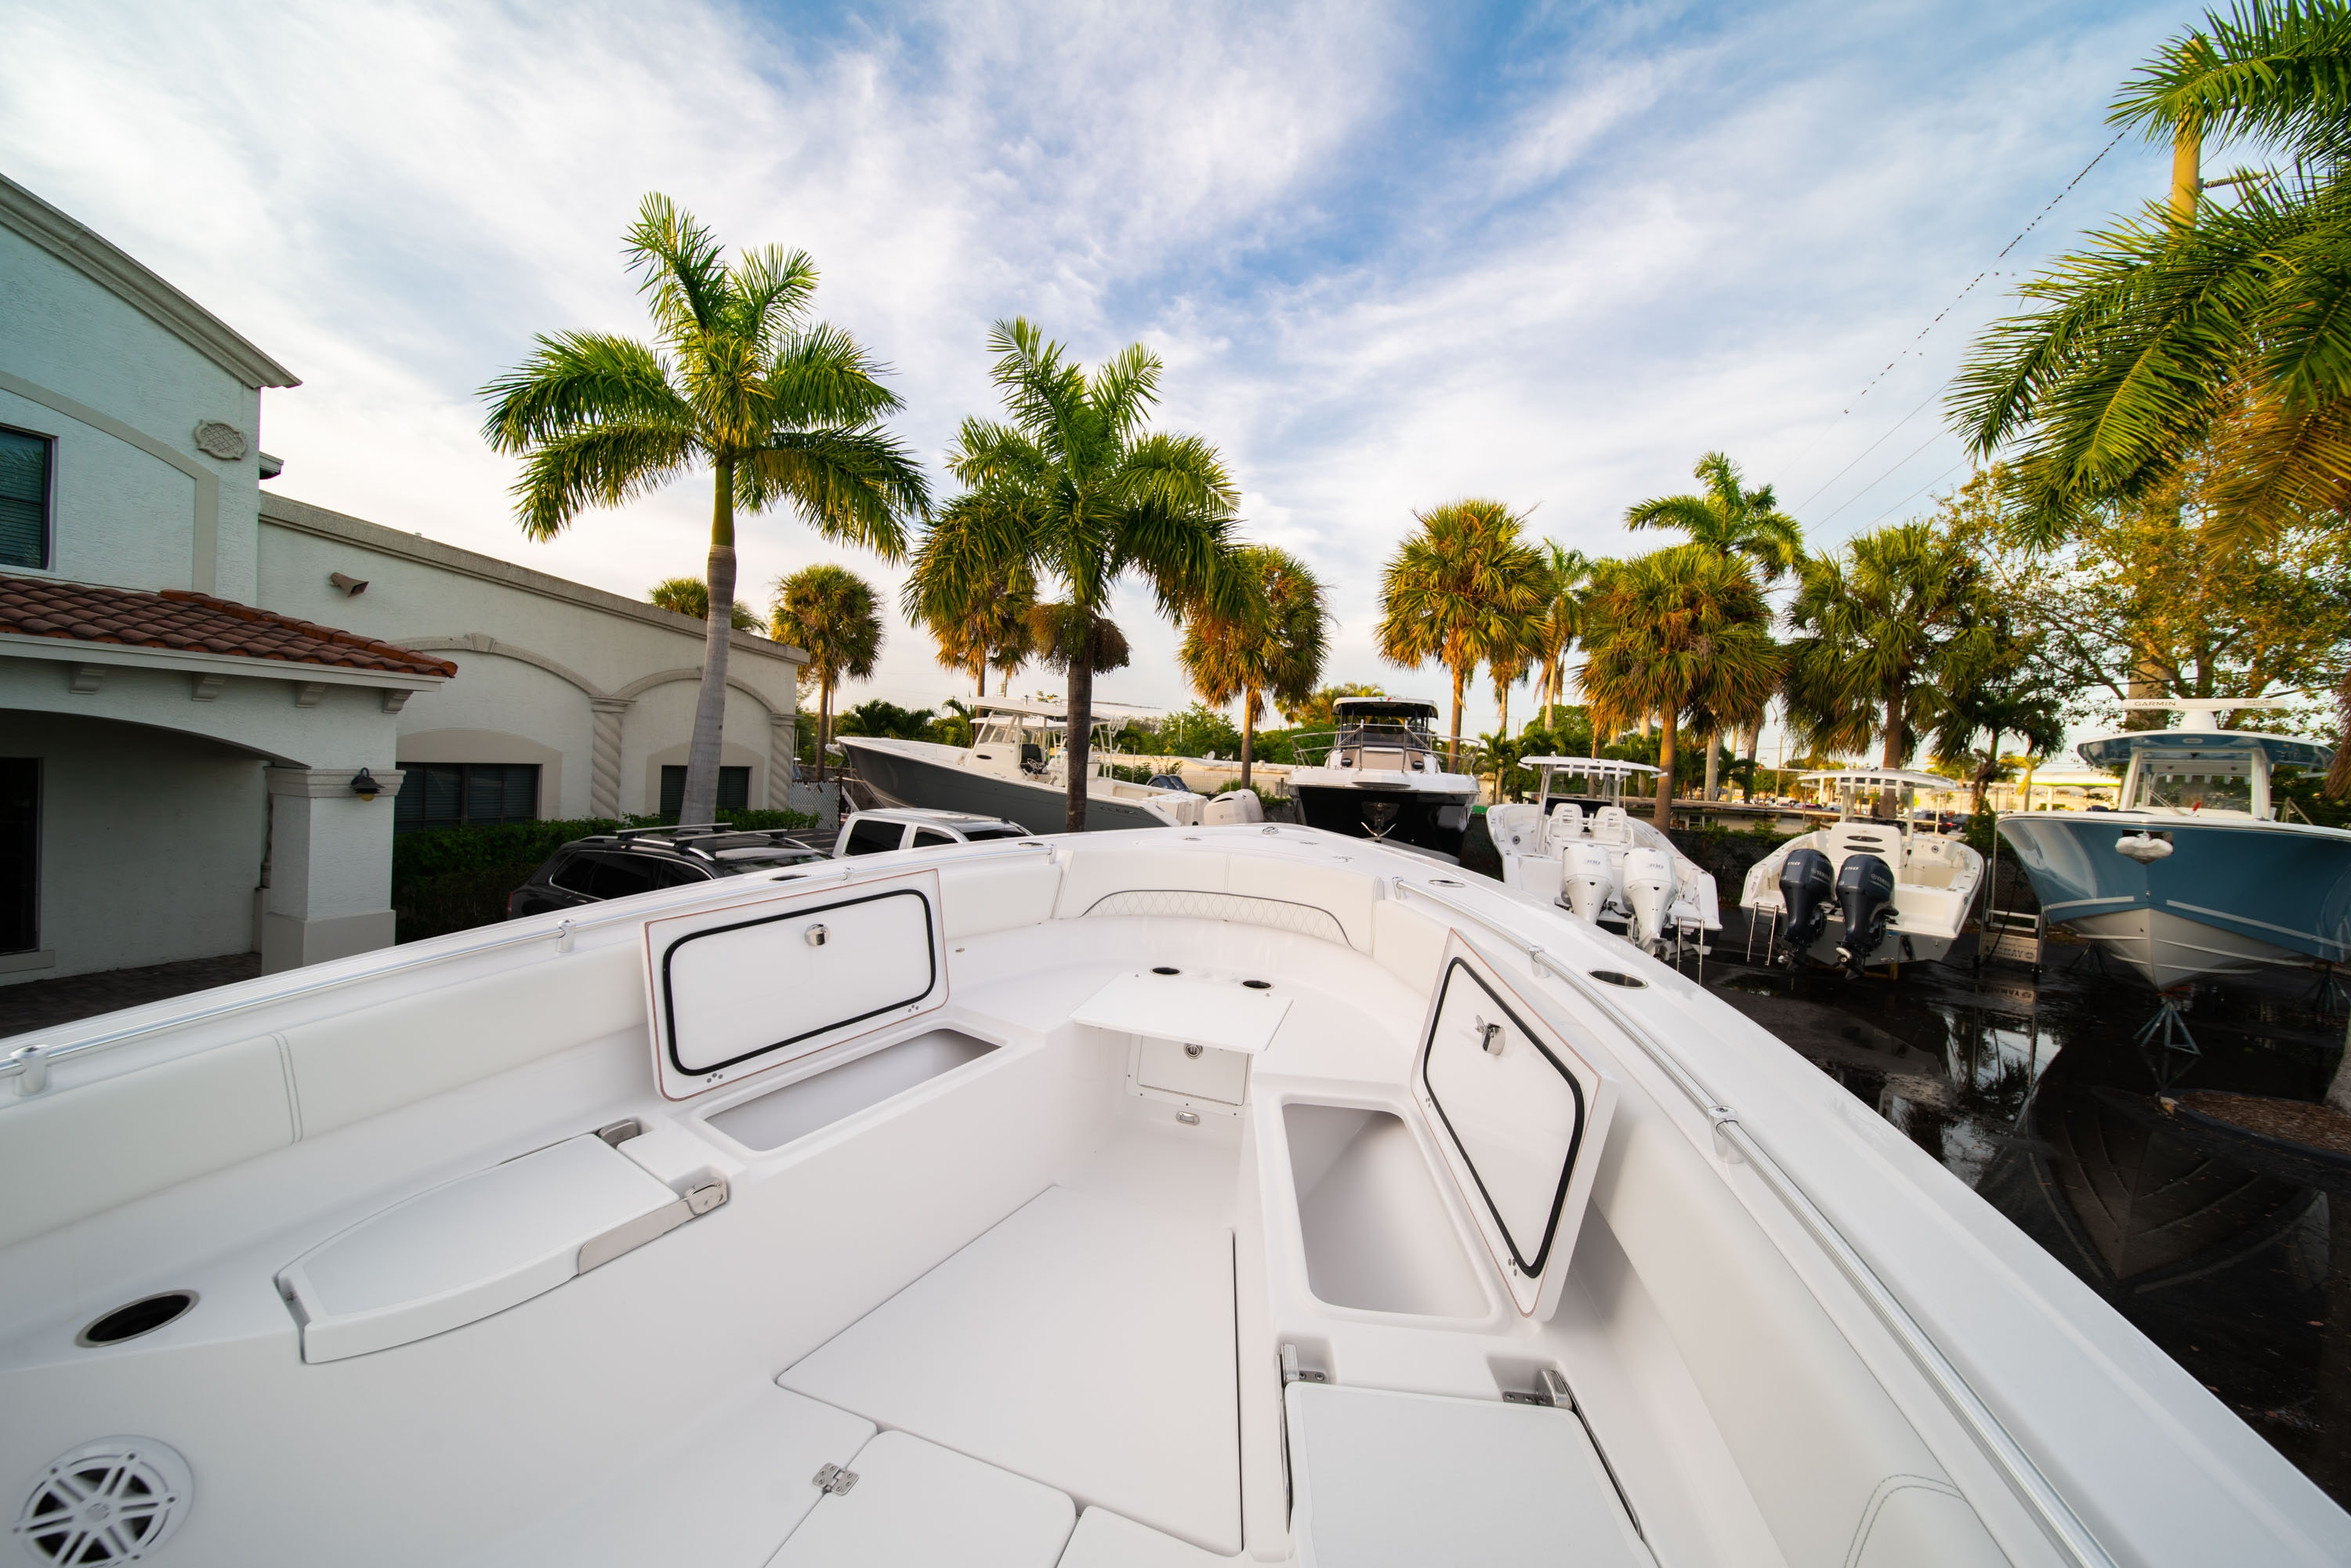 Thumbnail 45 for New 2020 Sportsman Open 282 Center Console boat for sale in West Palm Beach, FL